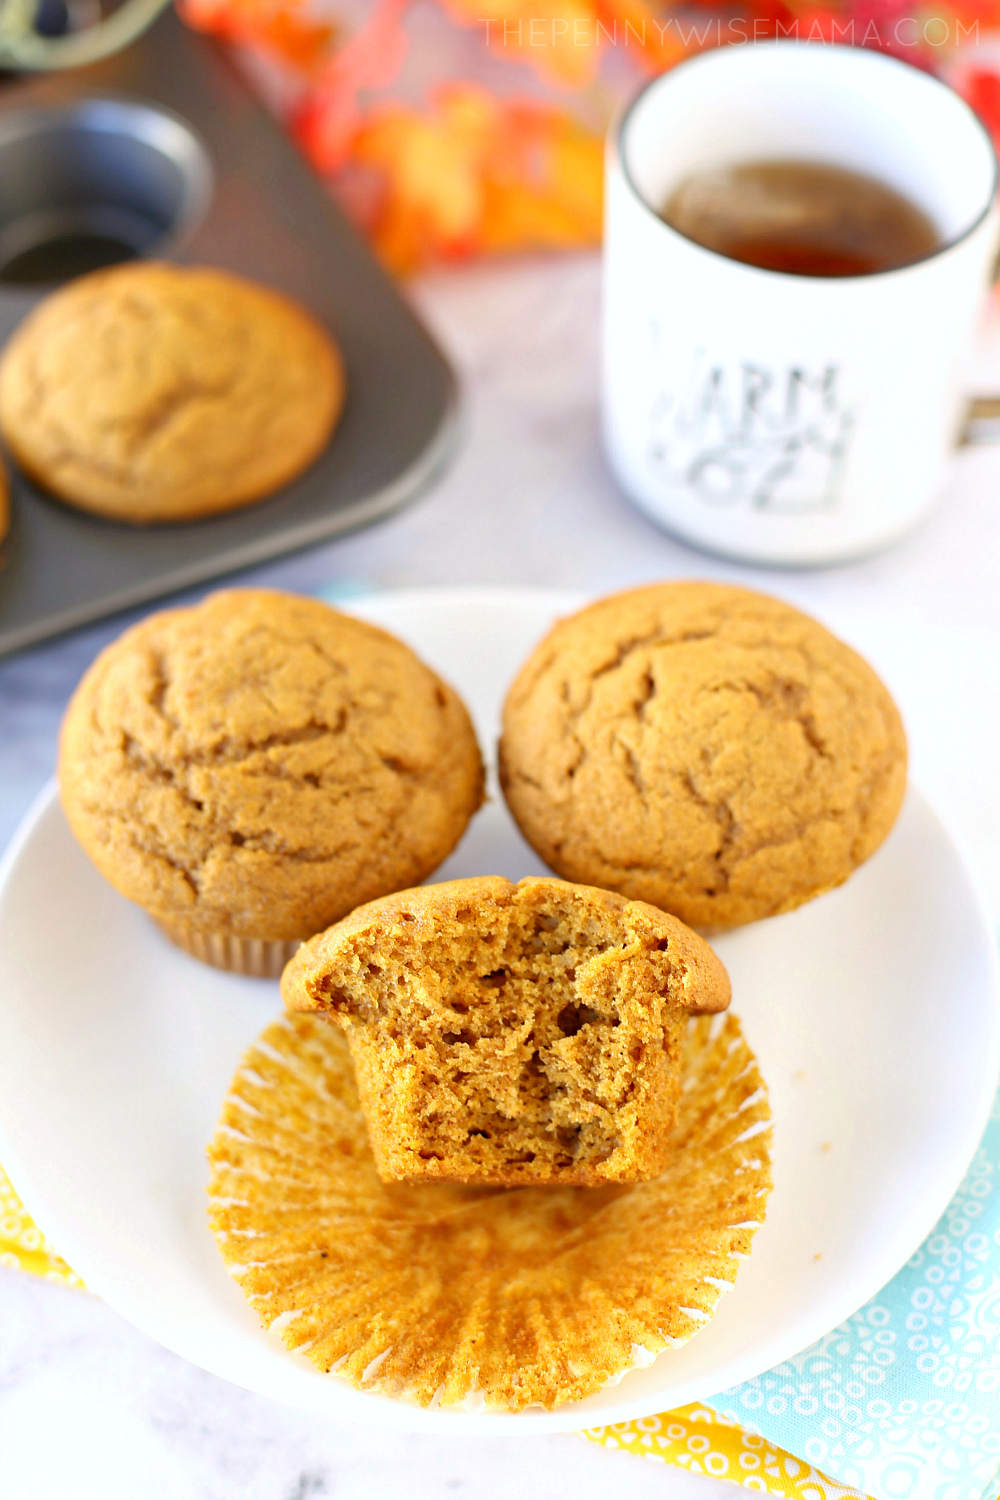 The BEST Pumpkin Muffin Recipe! Super moist and full of flavor - click to get the easy recipe!